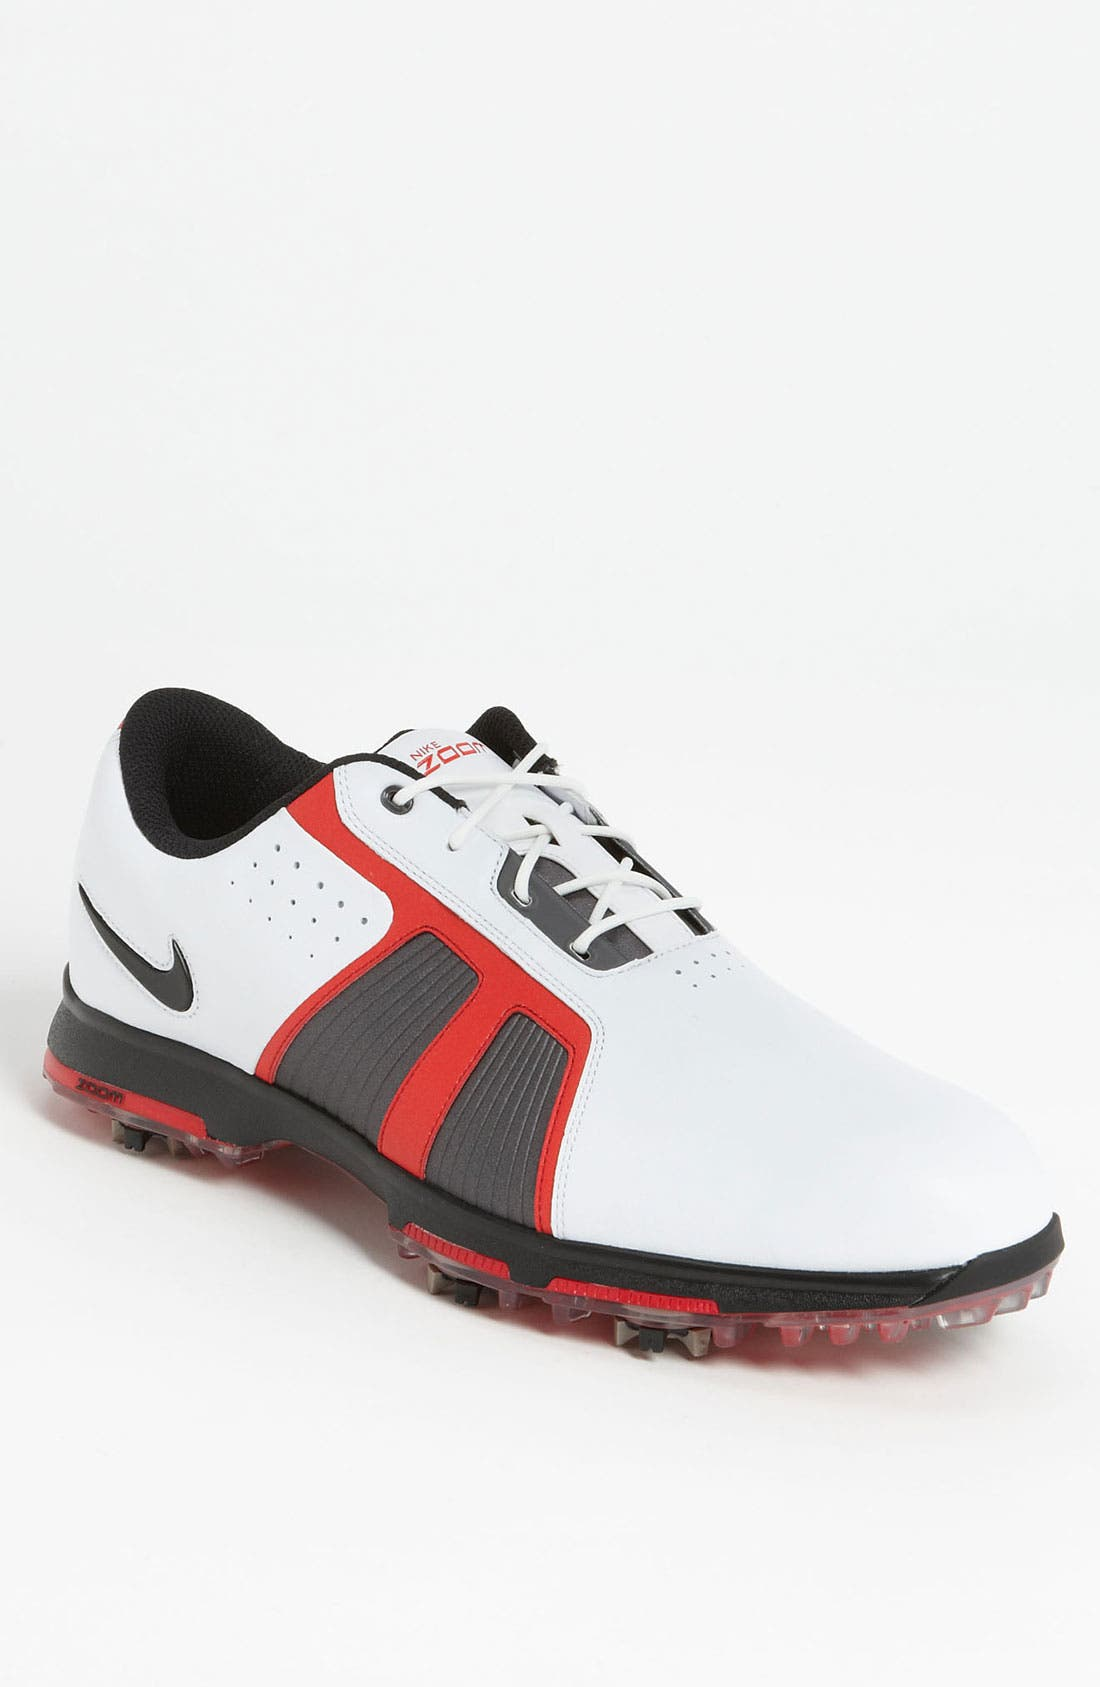 Alternate Image 1 Selected - Nike 'Zoom Trophy' Golf Shoe (Men)